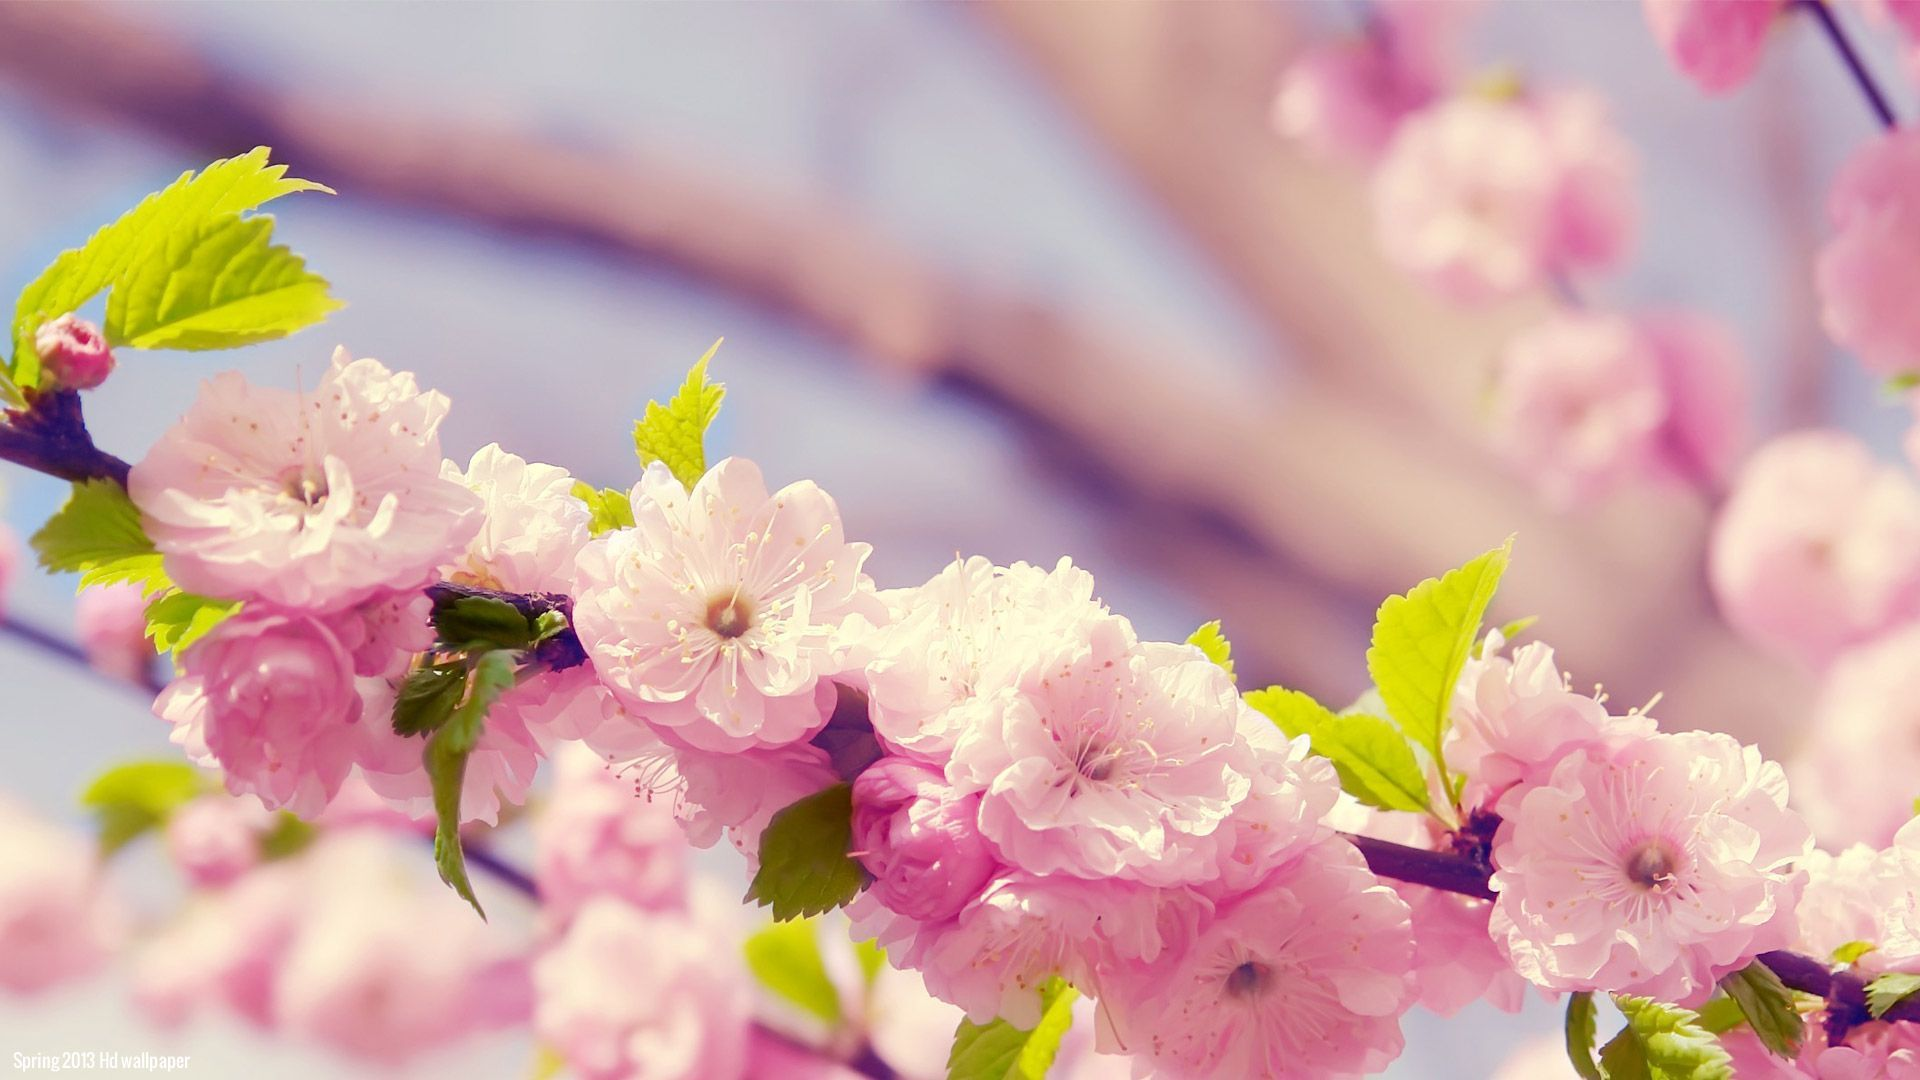 Spring flowers wallpaper backgrounds sf wallpaper spring flowers backgrounds desktop wallpaper cave mightylinksfo